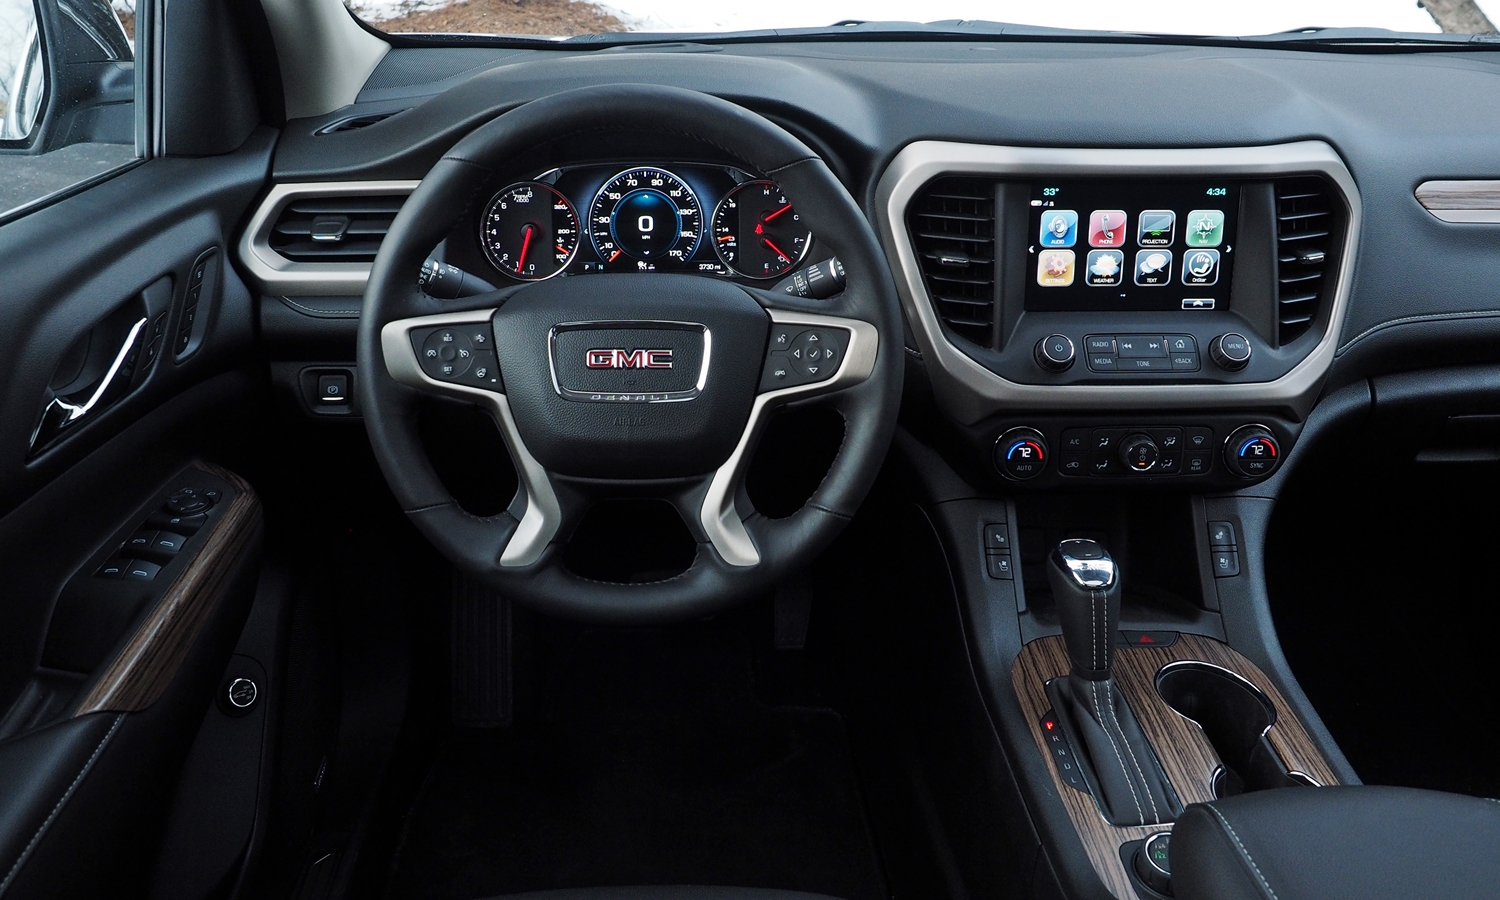 GMC Acadia Photos: 2017 GMC Acadia instrument panel